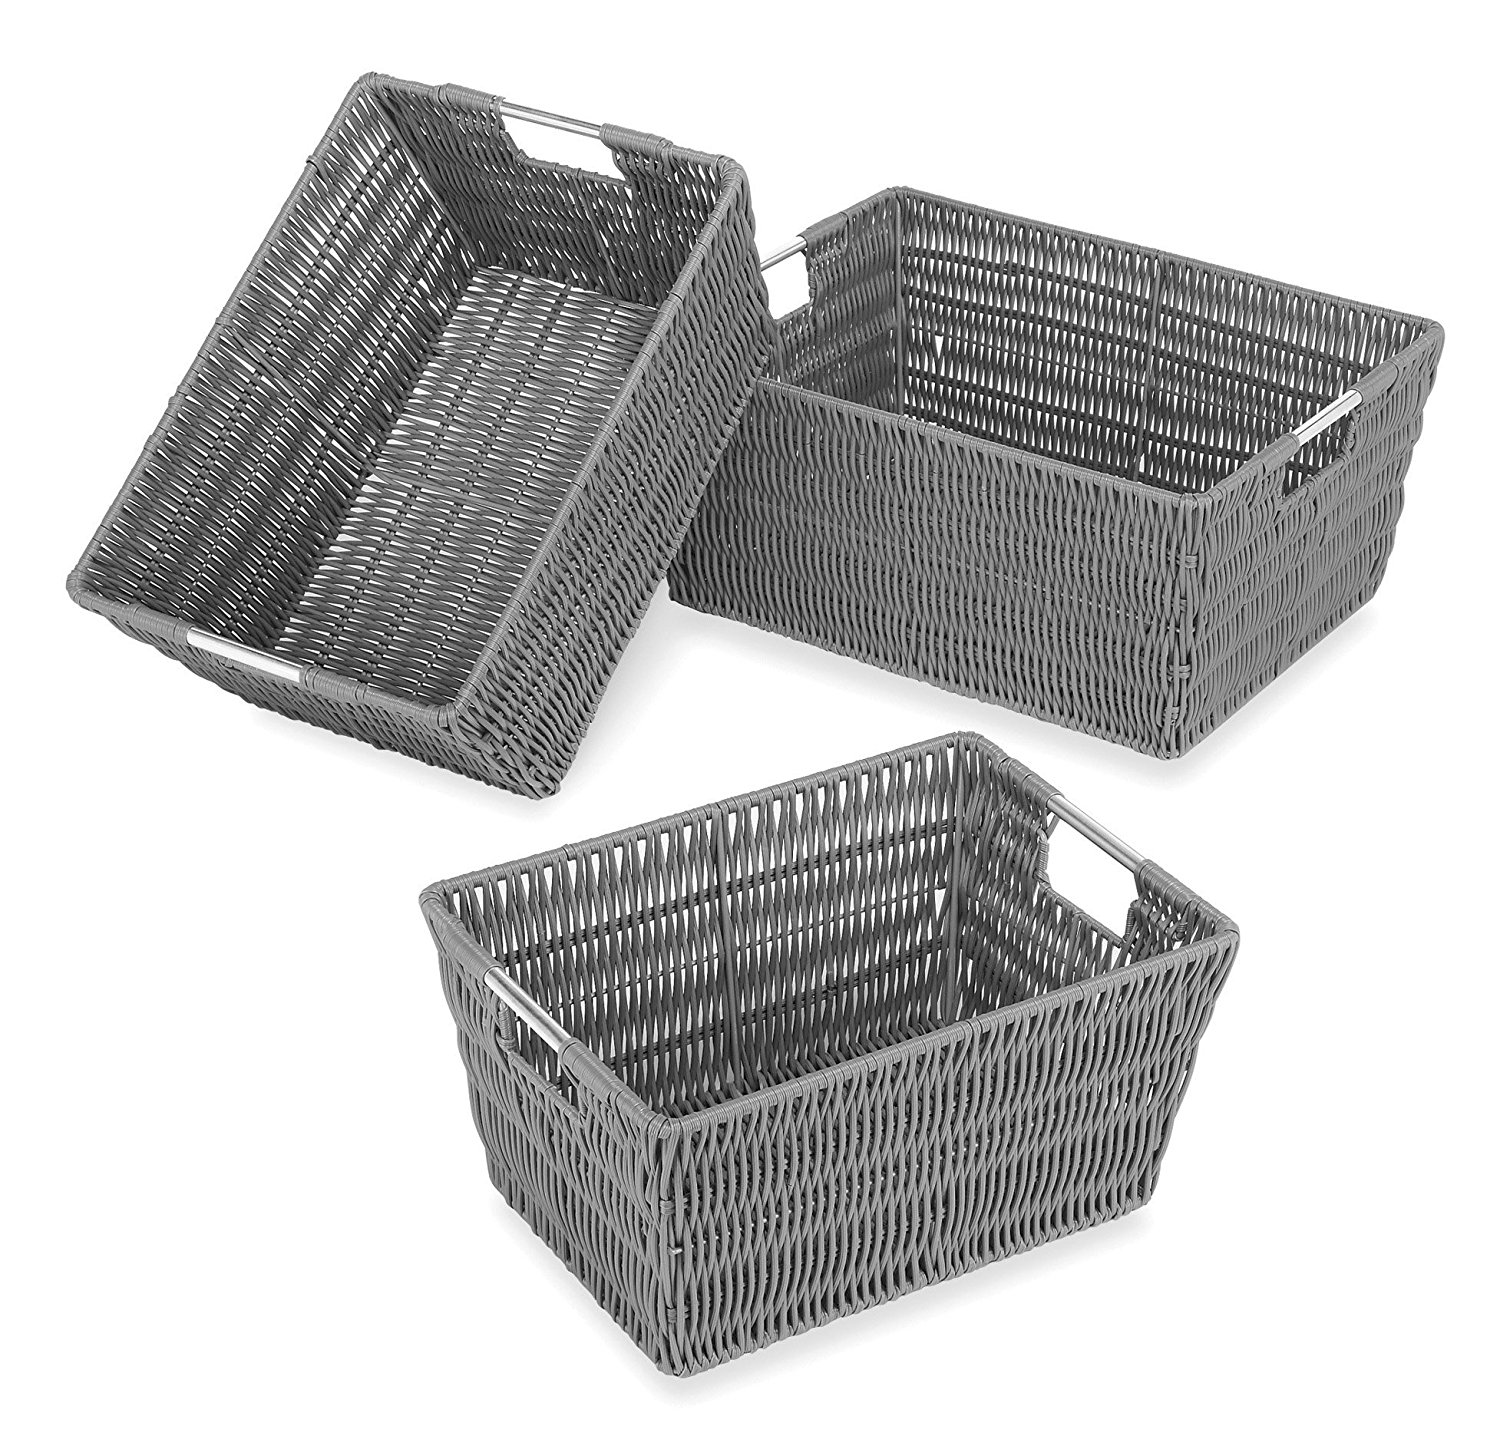 Rattique 3 Piece Basket Set